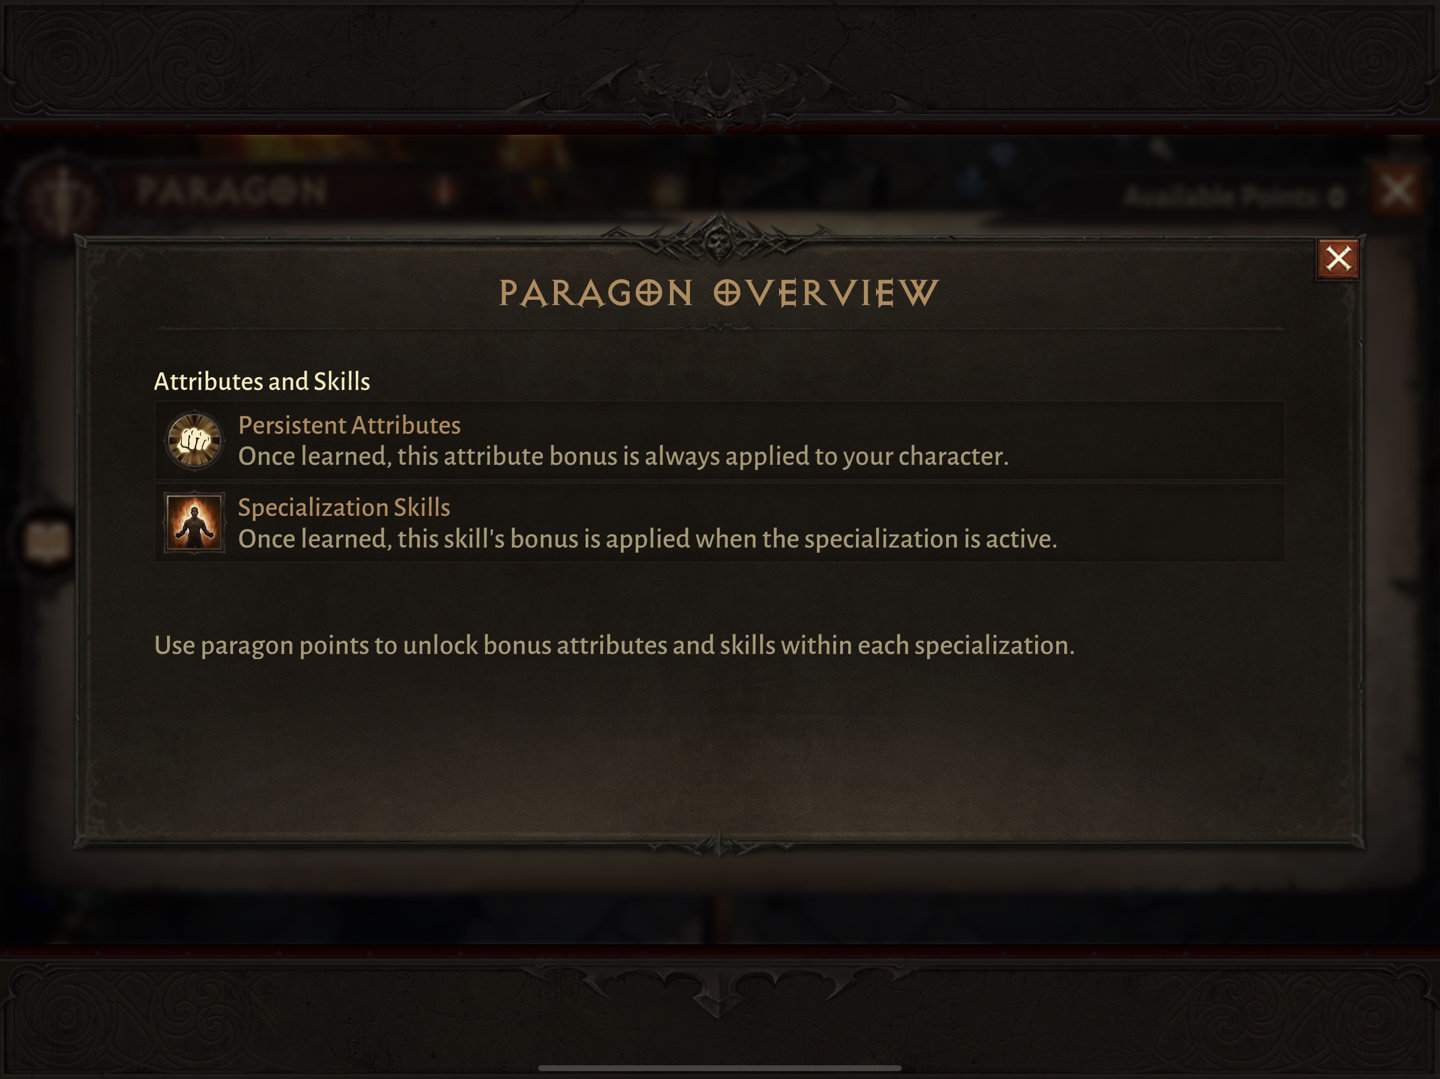 Paragons Overview